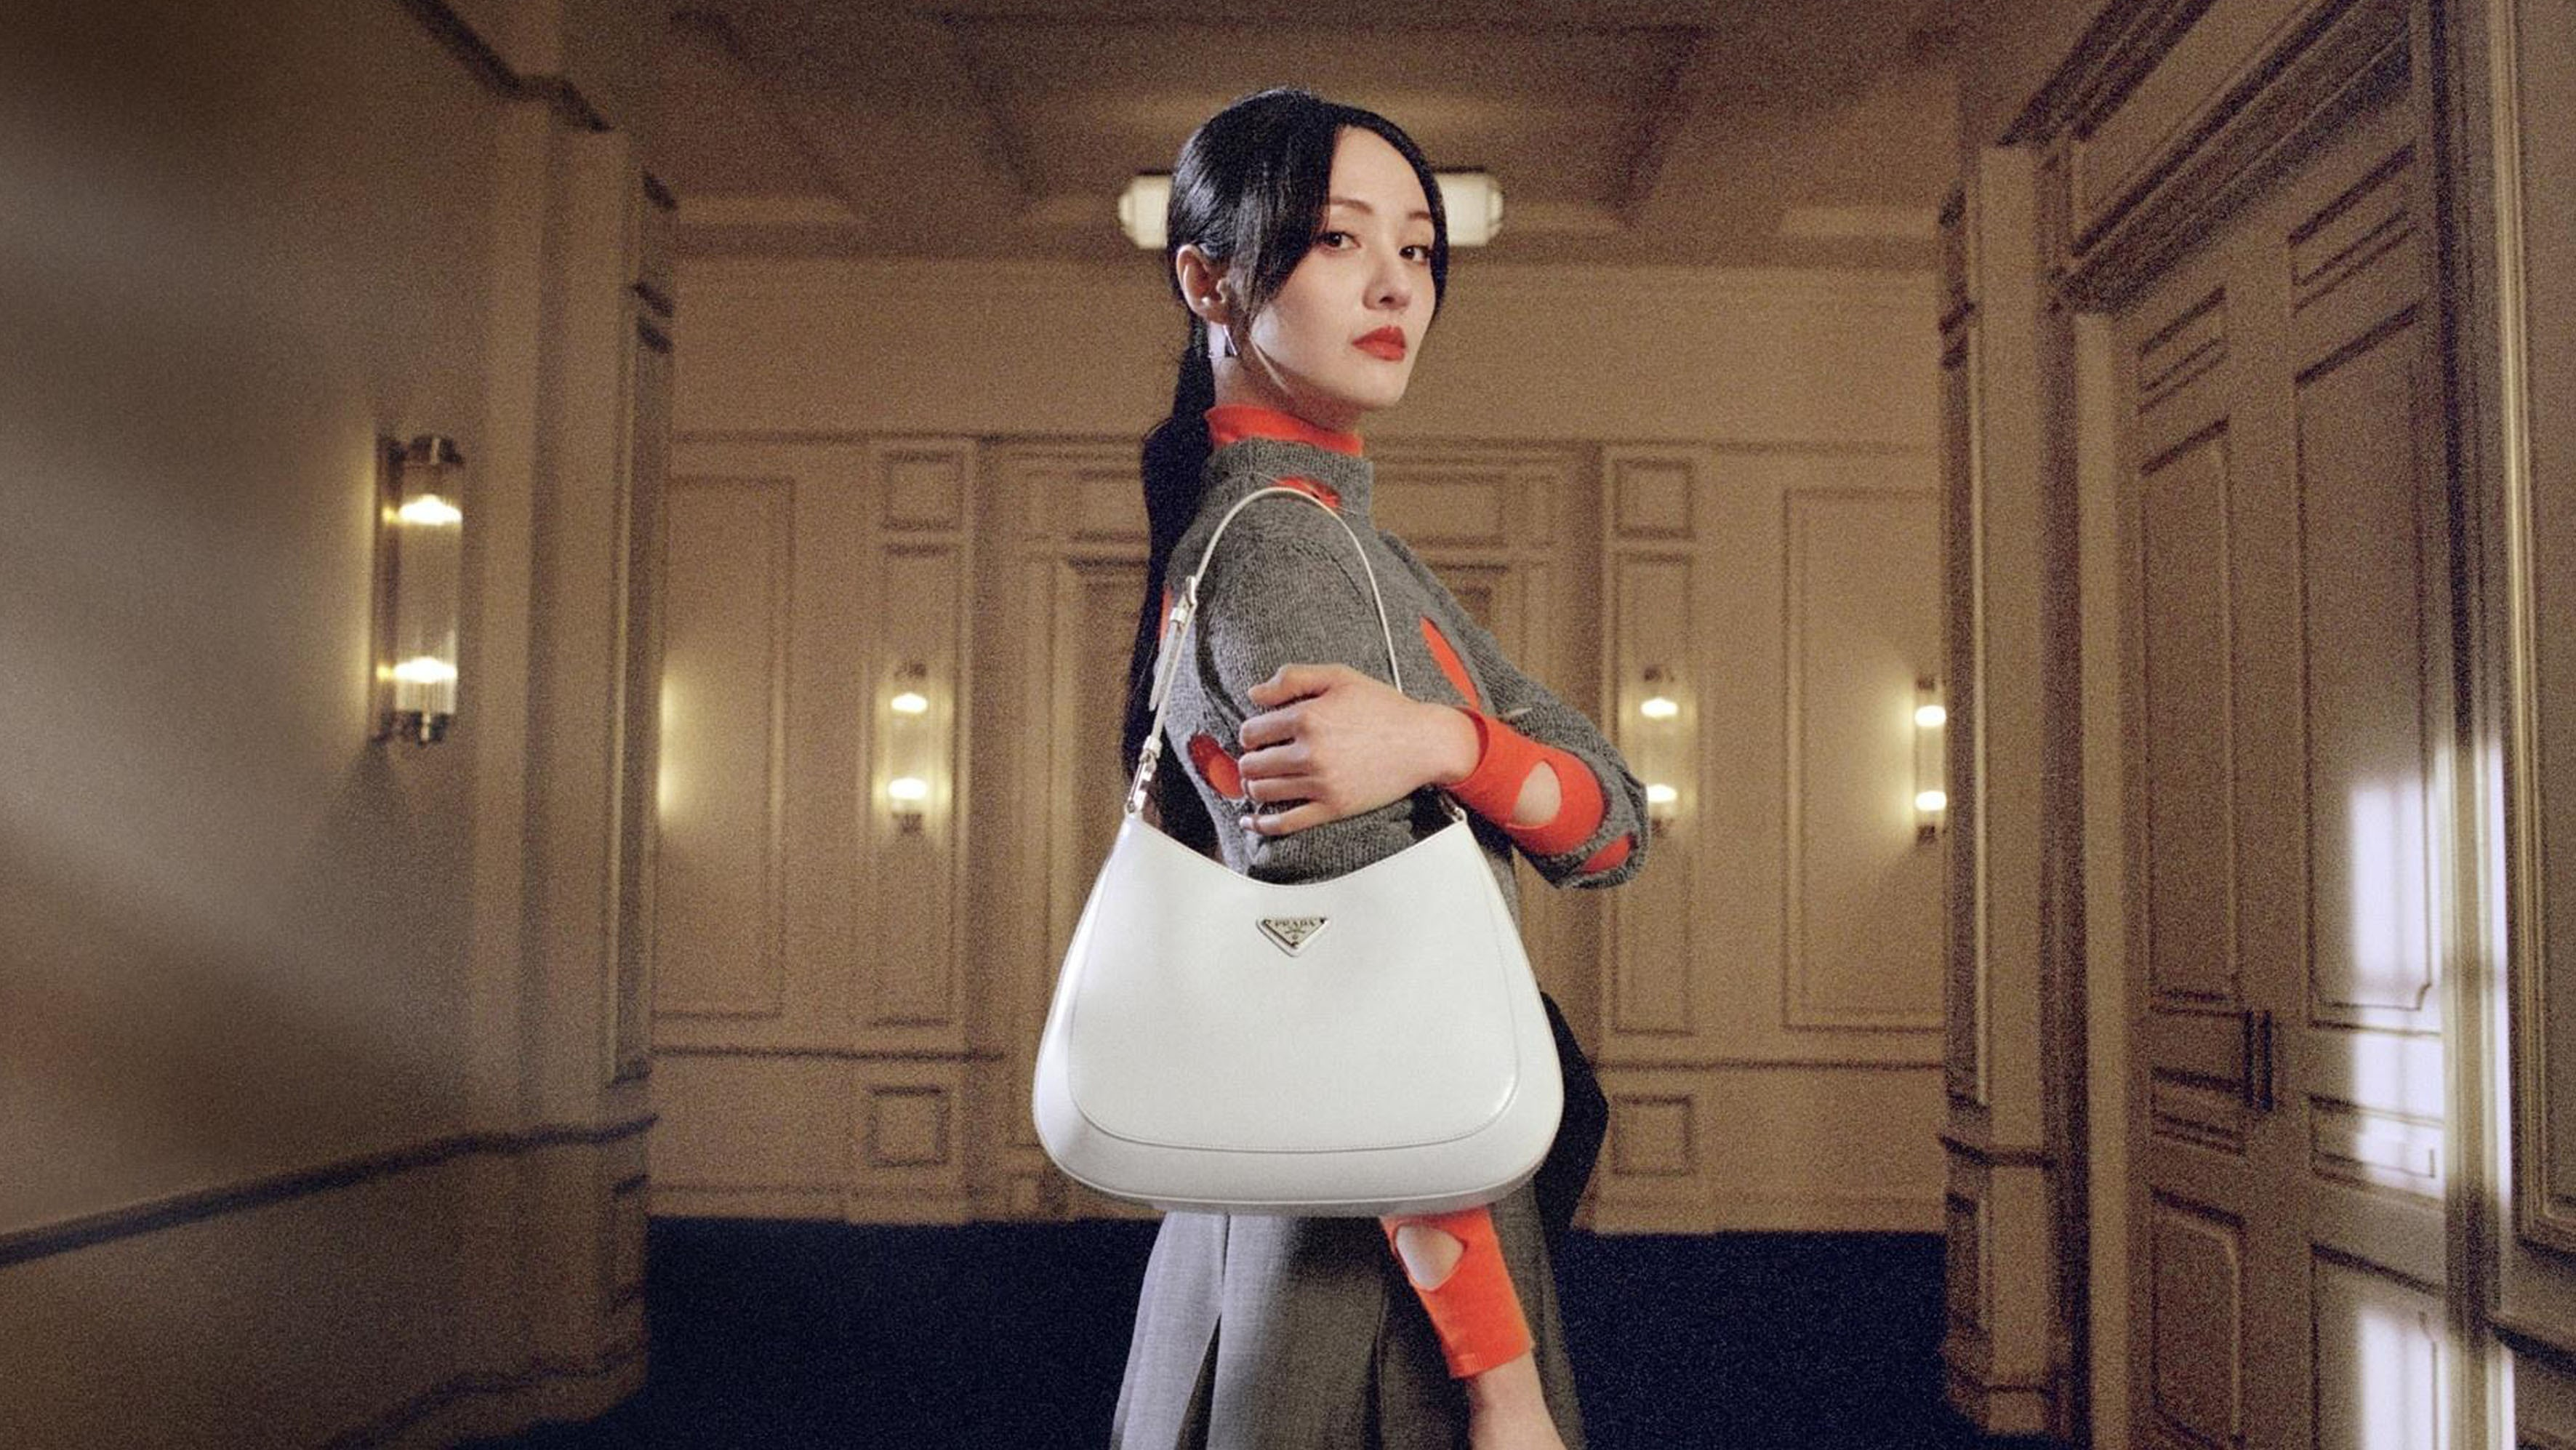 Actress Zheng Shuang in Prada's latest Chinese New Year campaign. Prada.